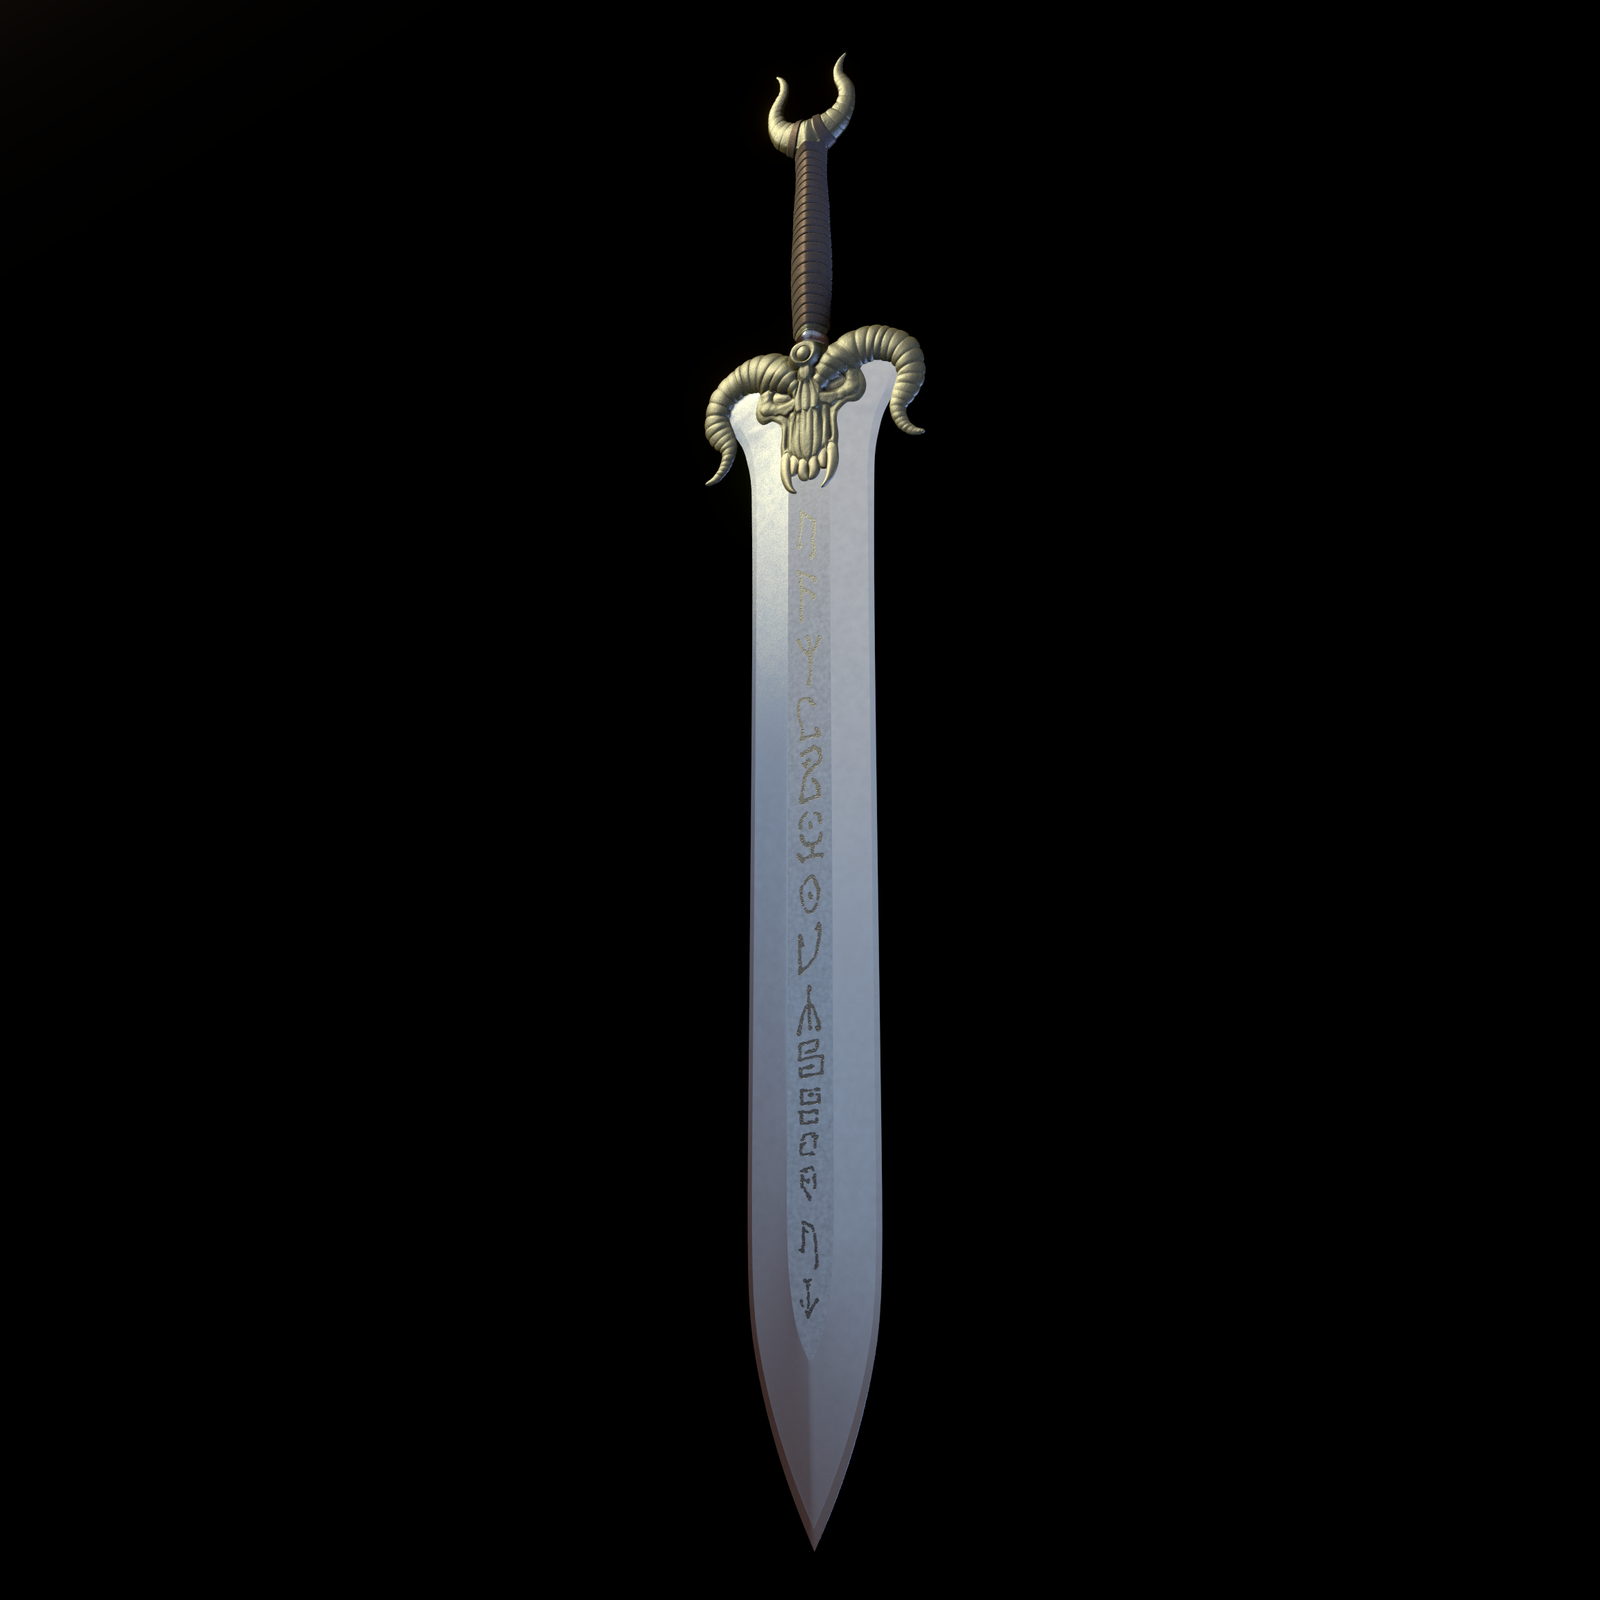 Rubus' Osric The Barbarian's Sword - 1 by paulrich